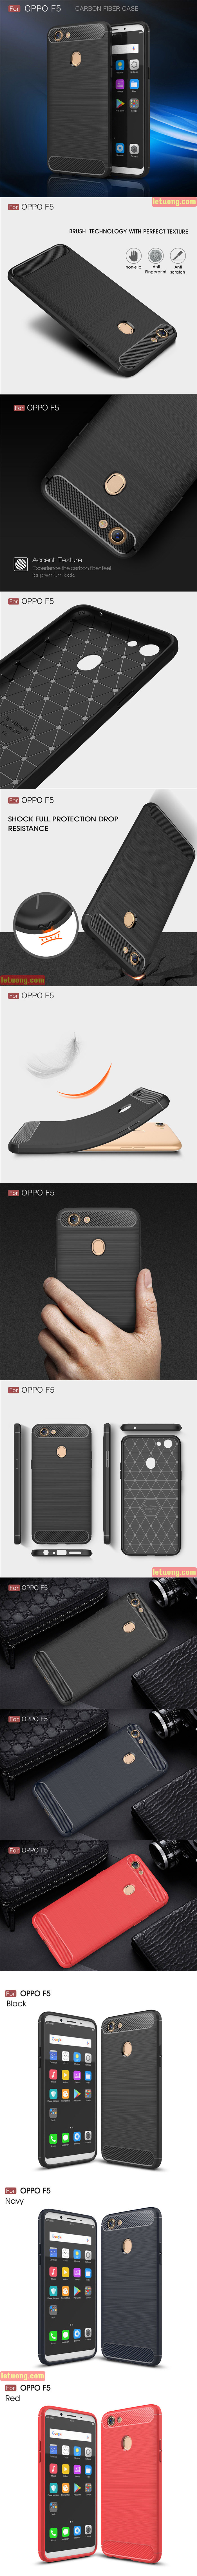 Ốp lưng Oppo F5 / F5 Youth Viseaon Rugged Armor Carbon nhựa mềm chống sốc